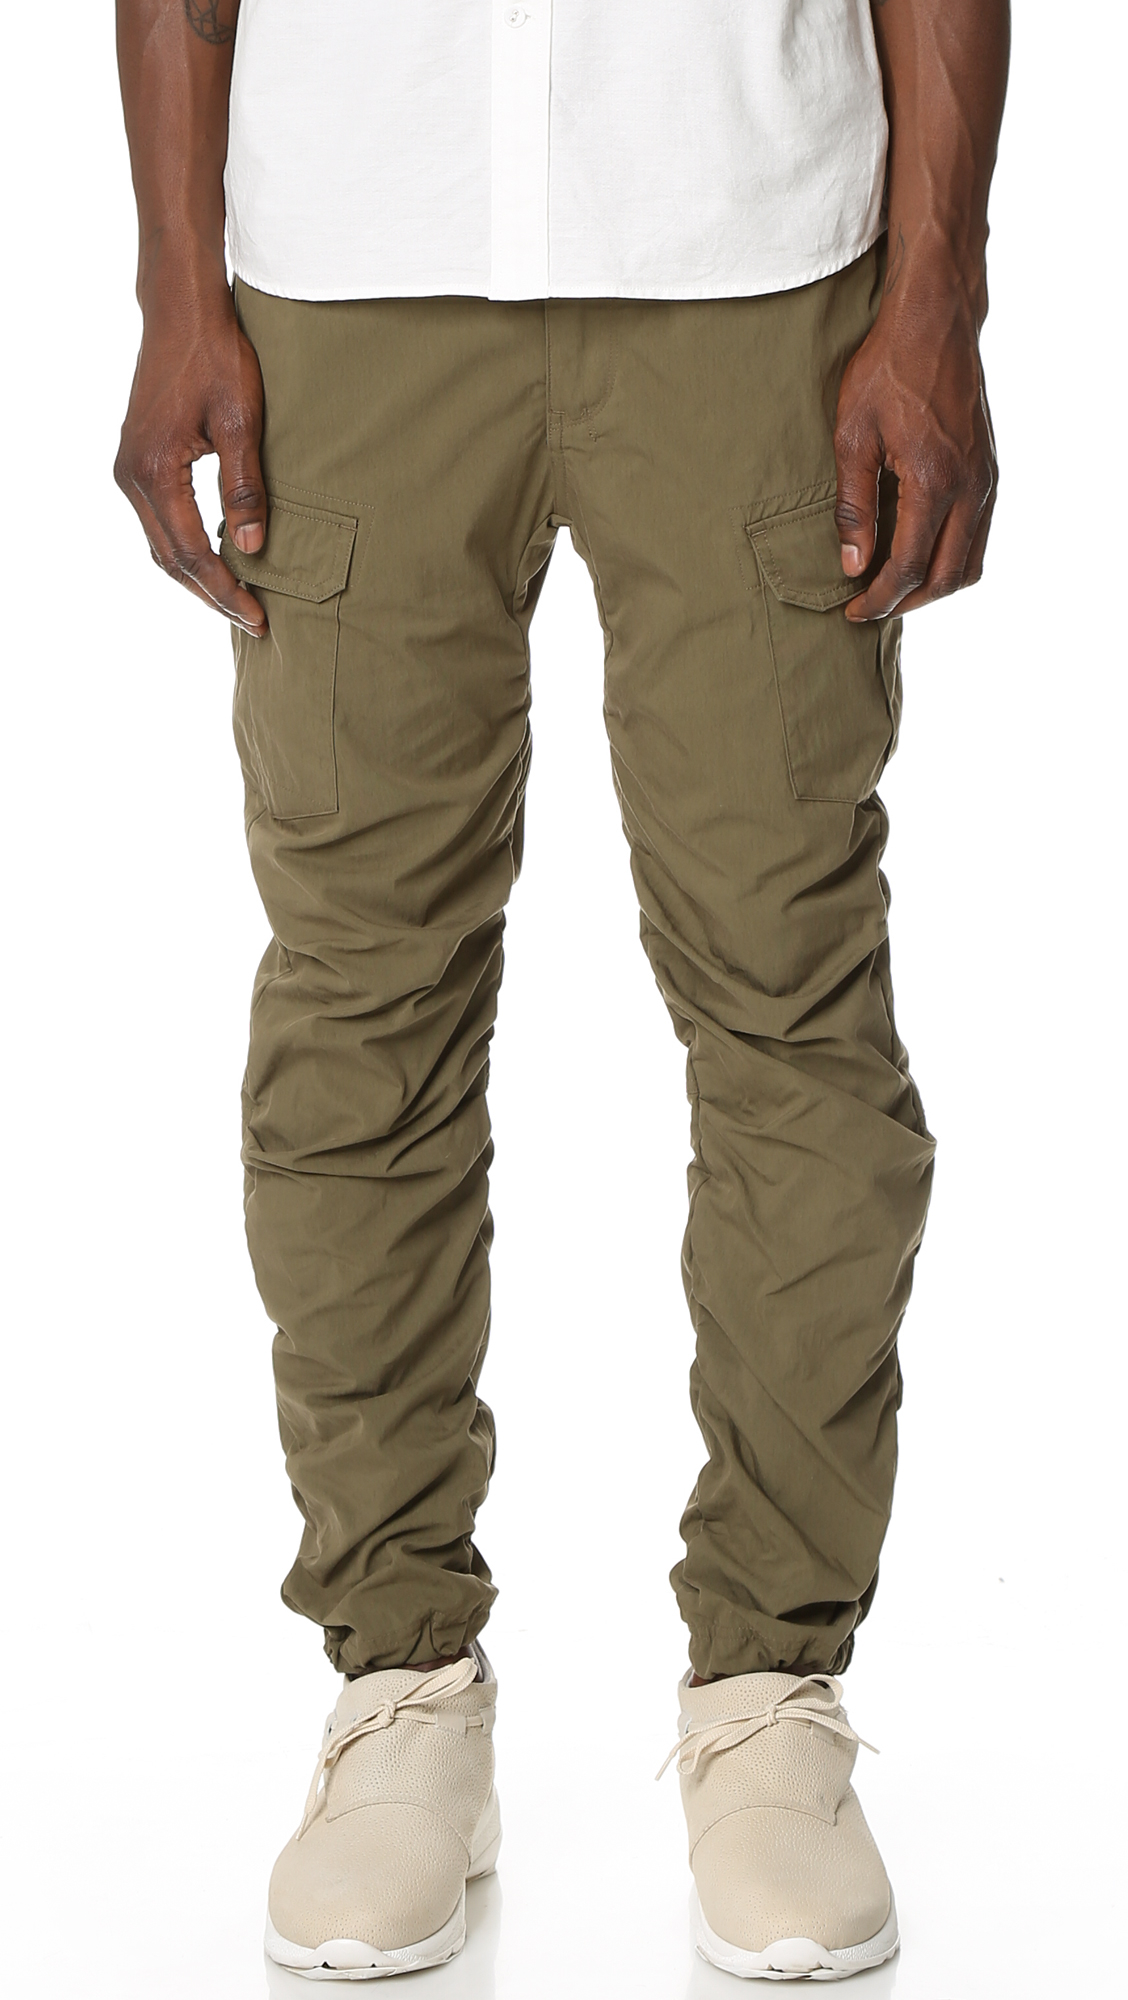 Nylon Cargo Pants For Men